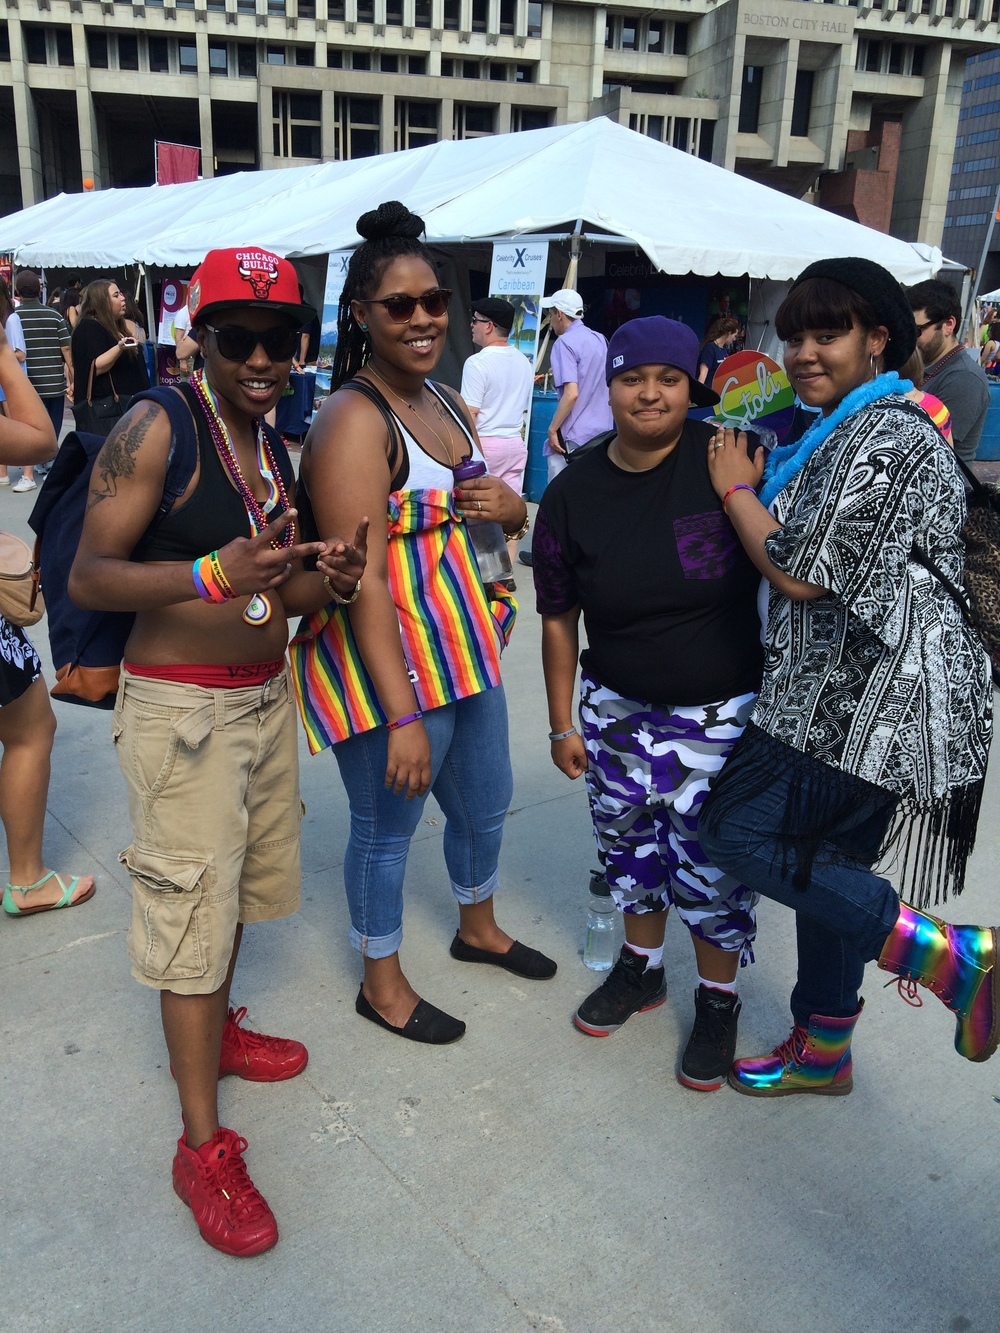 Kickin' It: Pride Style  Check out the footwear - all@style on these PRIDE's.